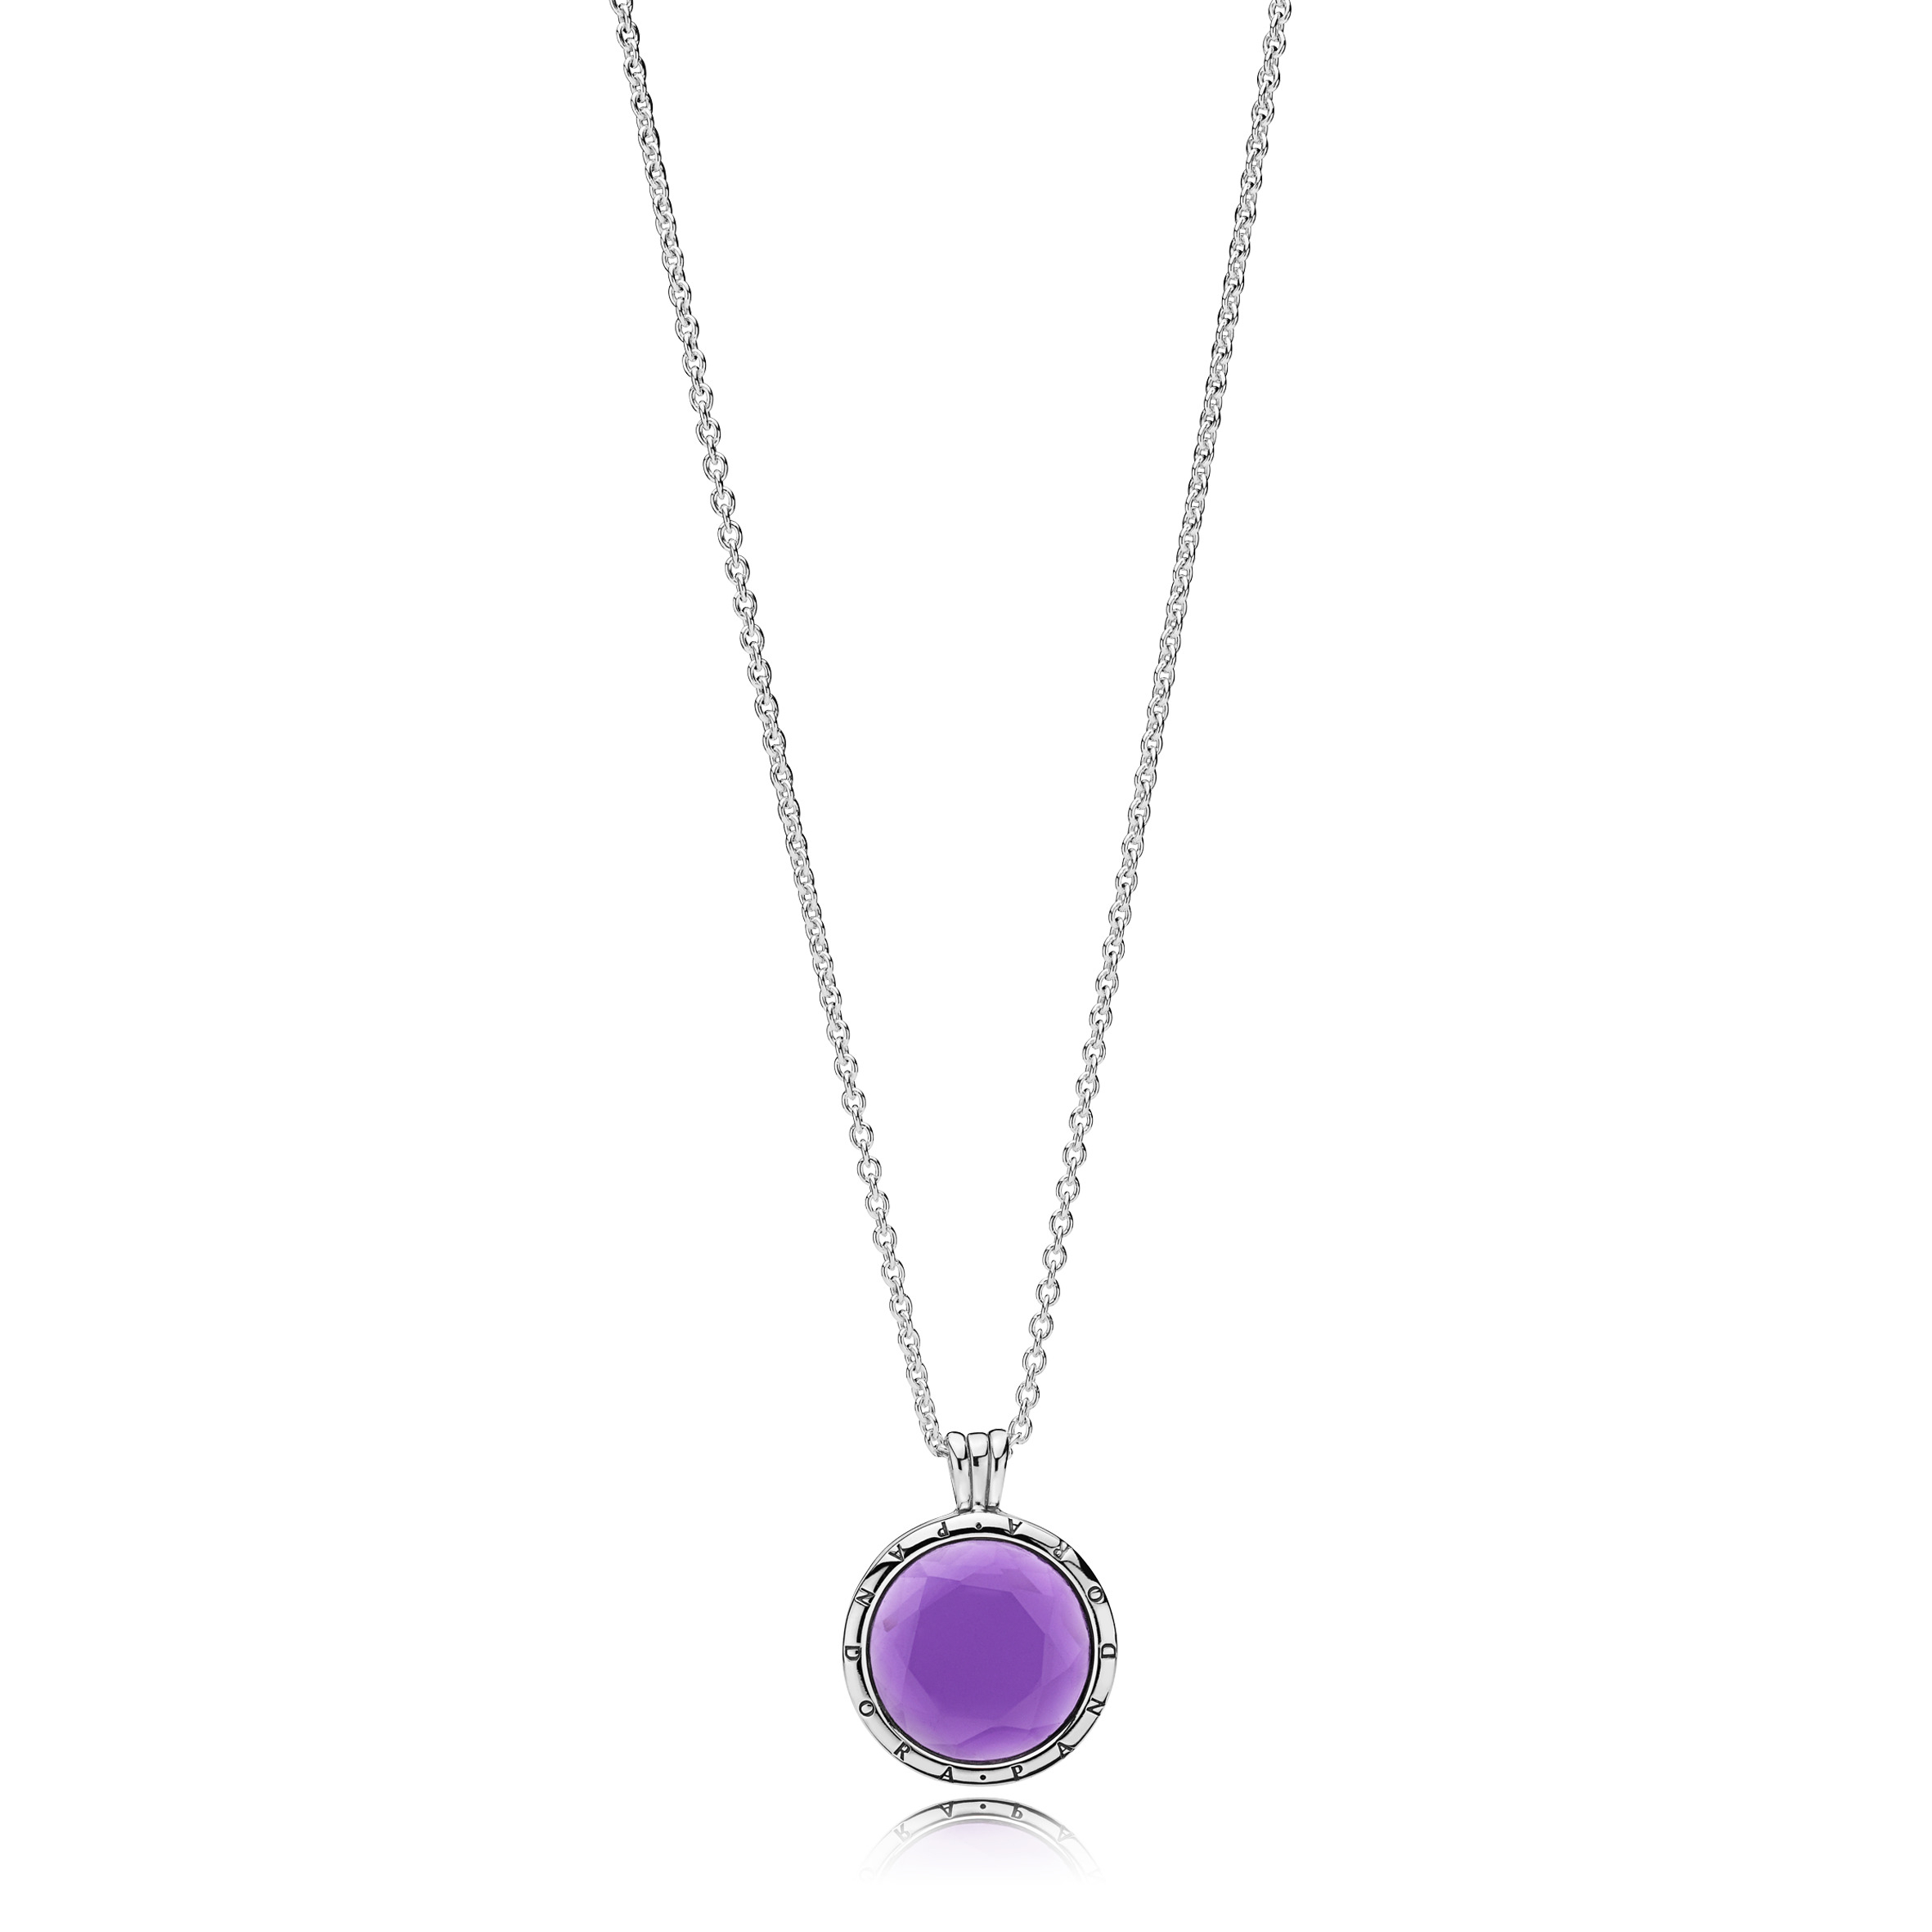 Pandora Faceted Floating Locket Necklace Within Most Up To Date Pandora Lockets Logo Necklaces (View 12 of 25)